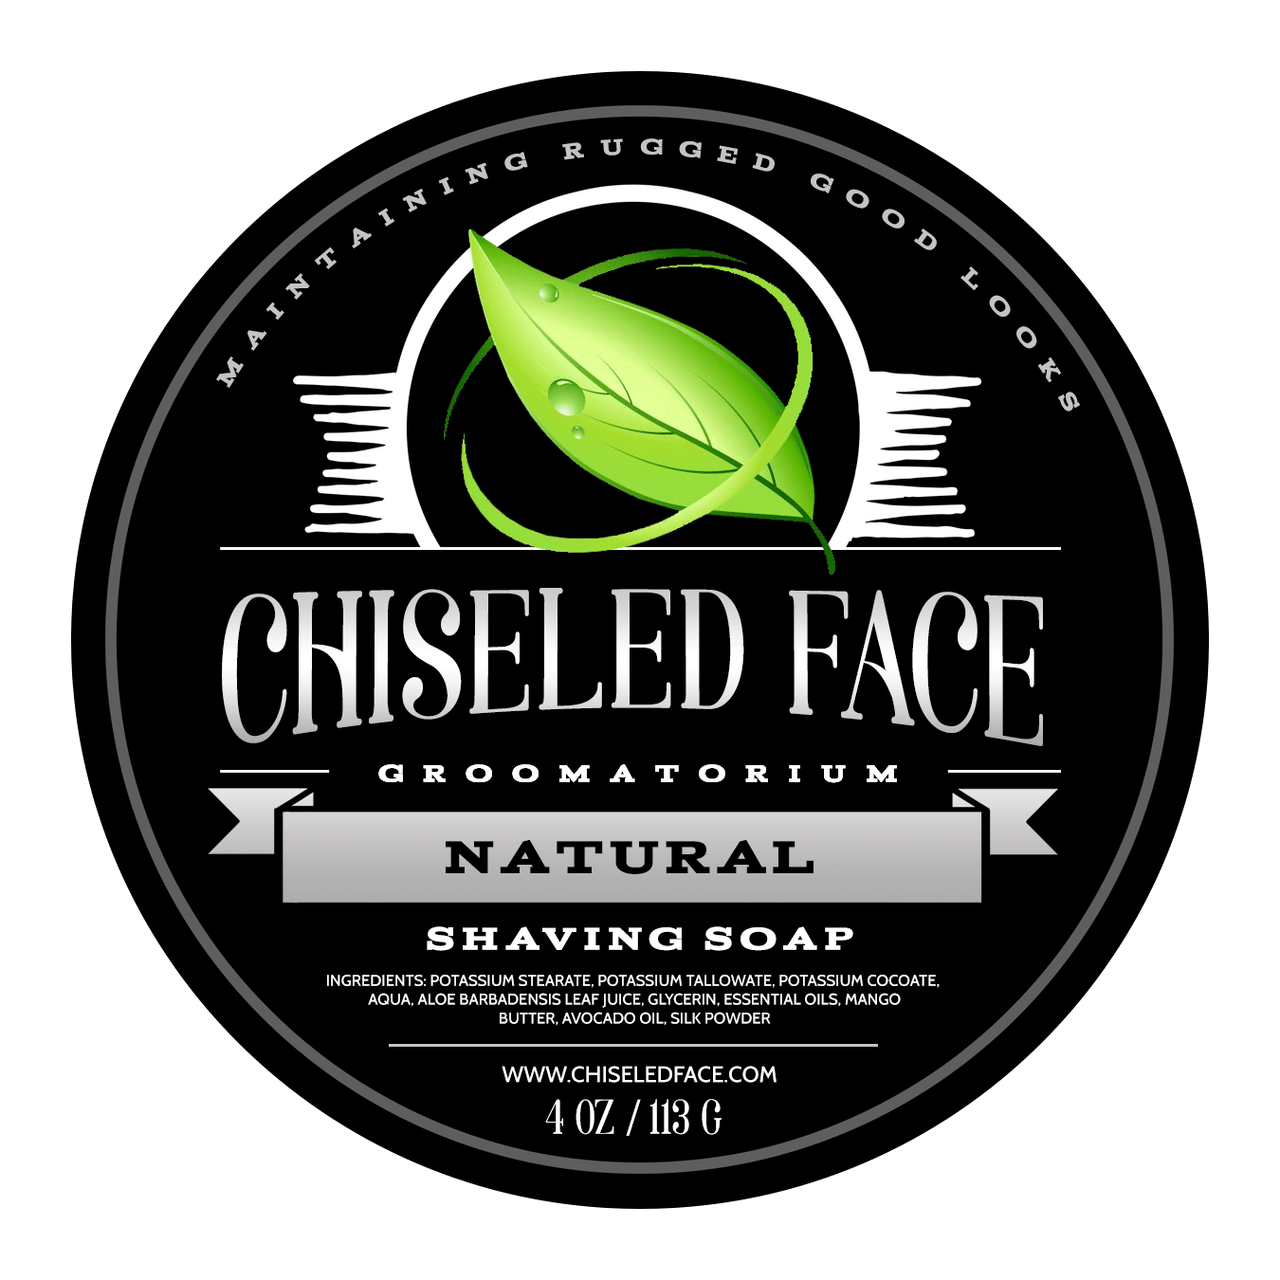 Chiseled Face Natural Shaving Soap